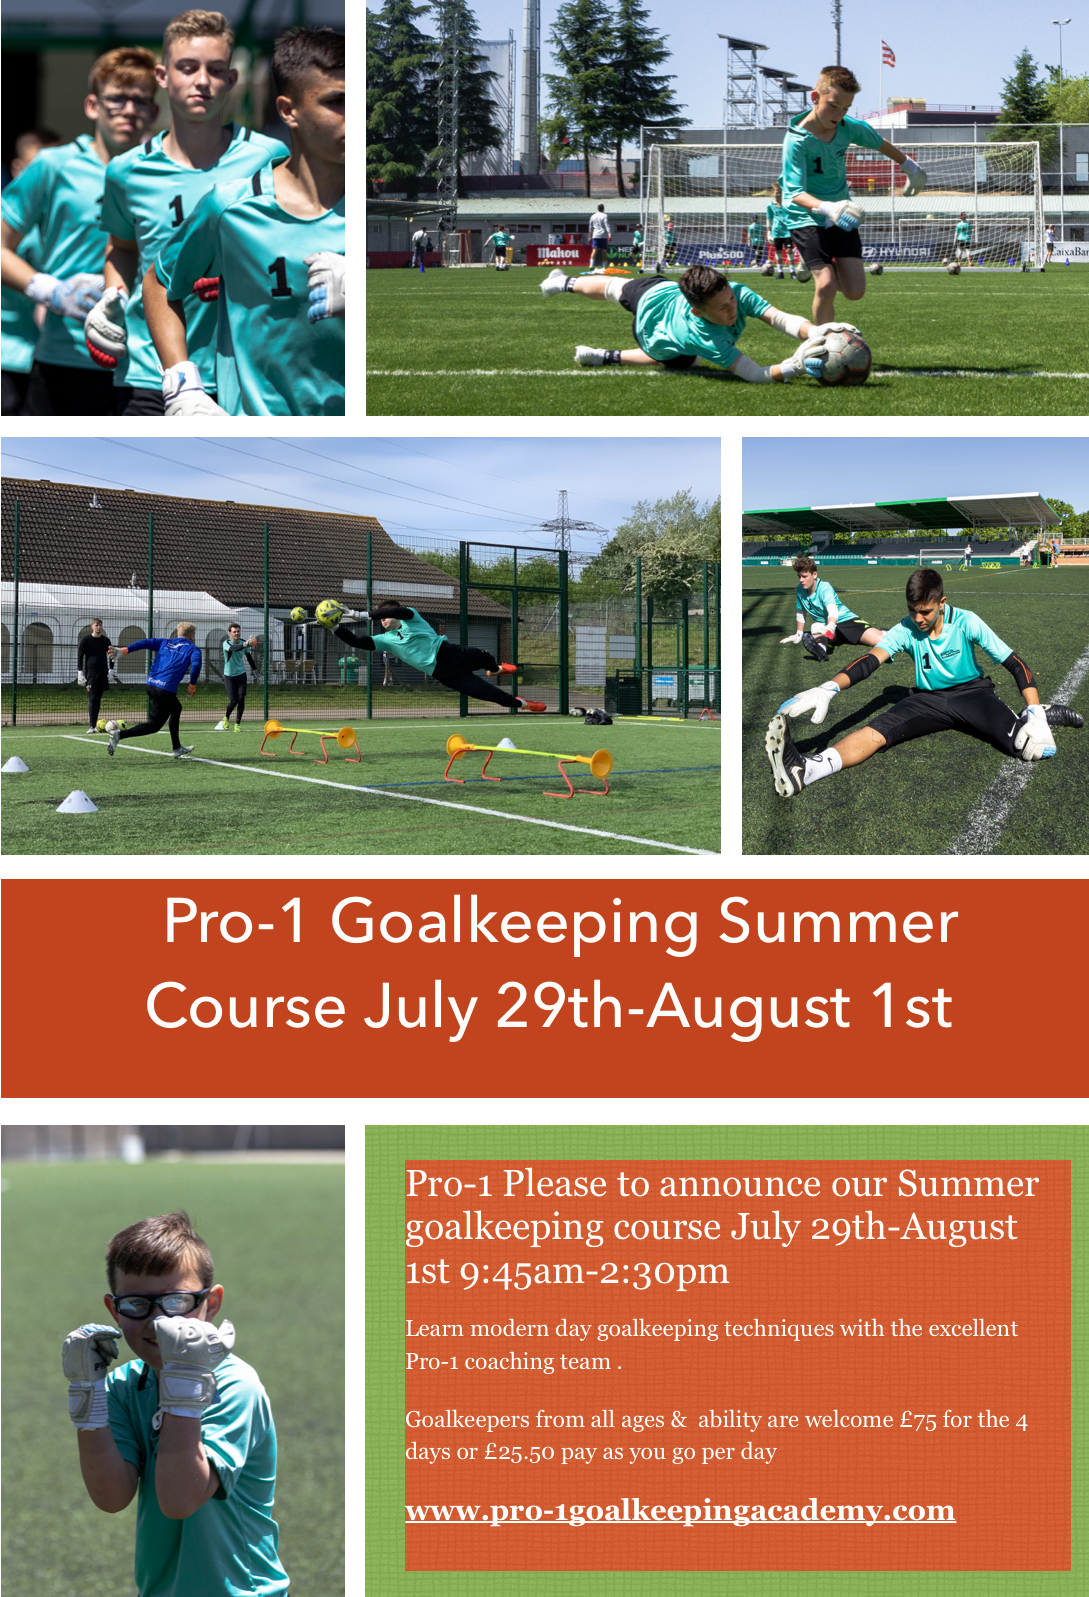 Pro-1 Goalkeeping Presents The Summer Camp